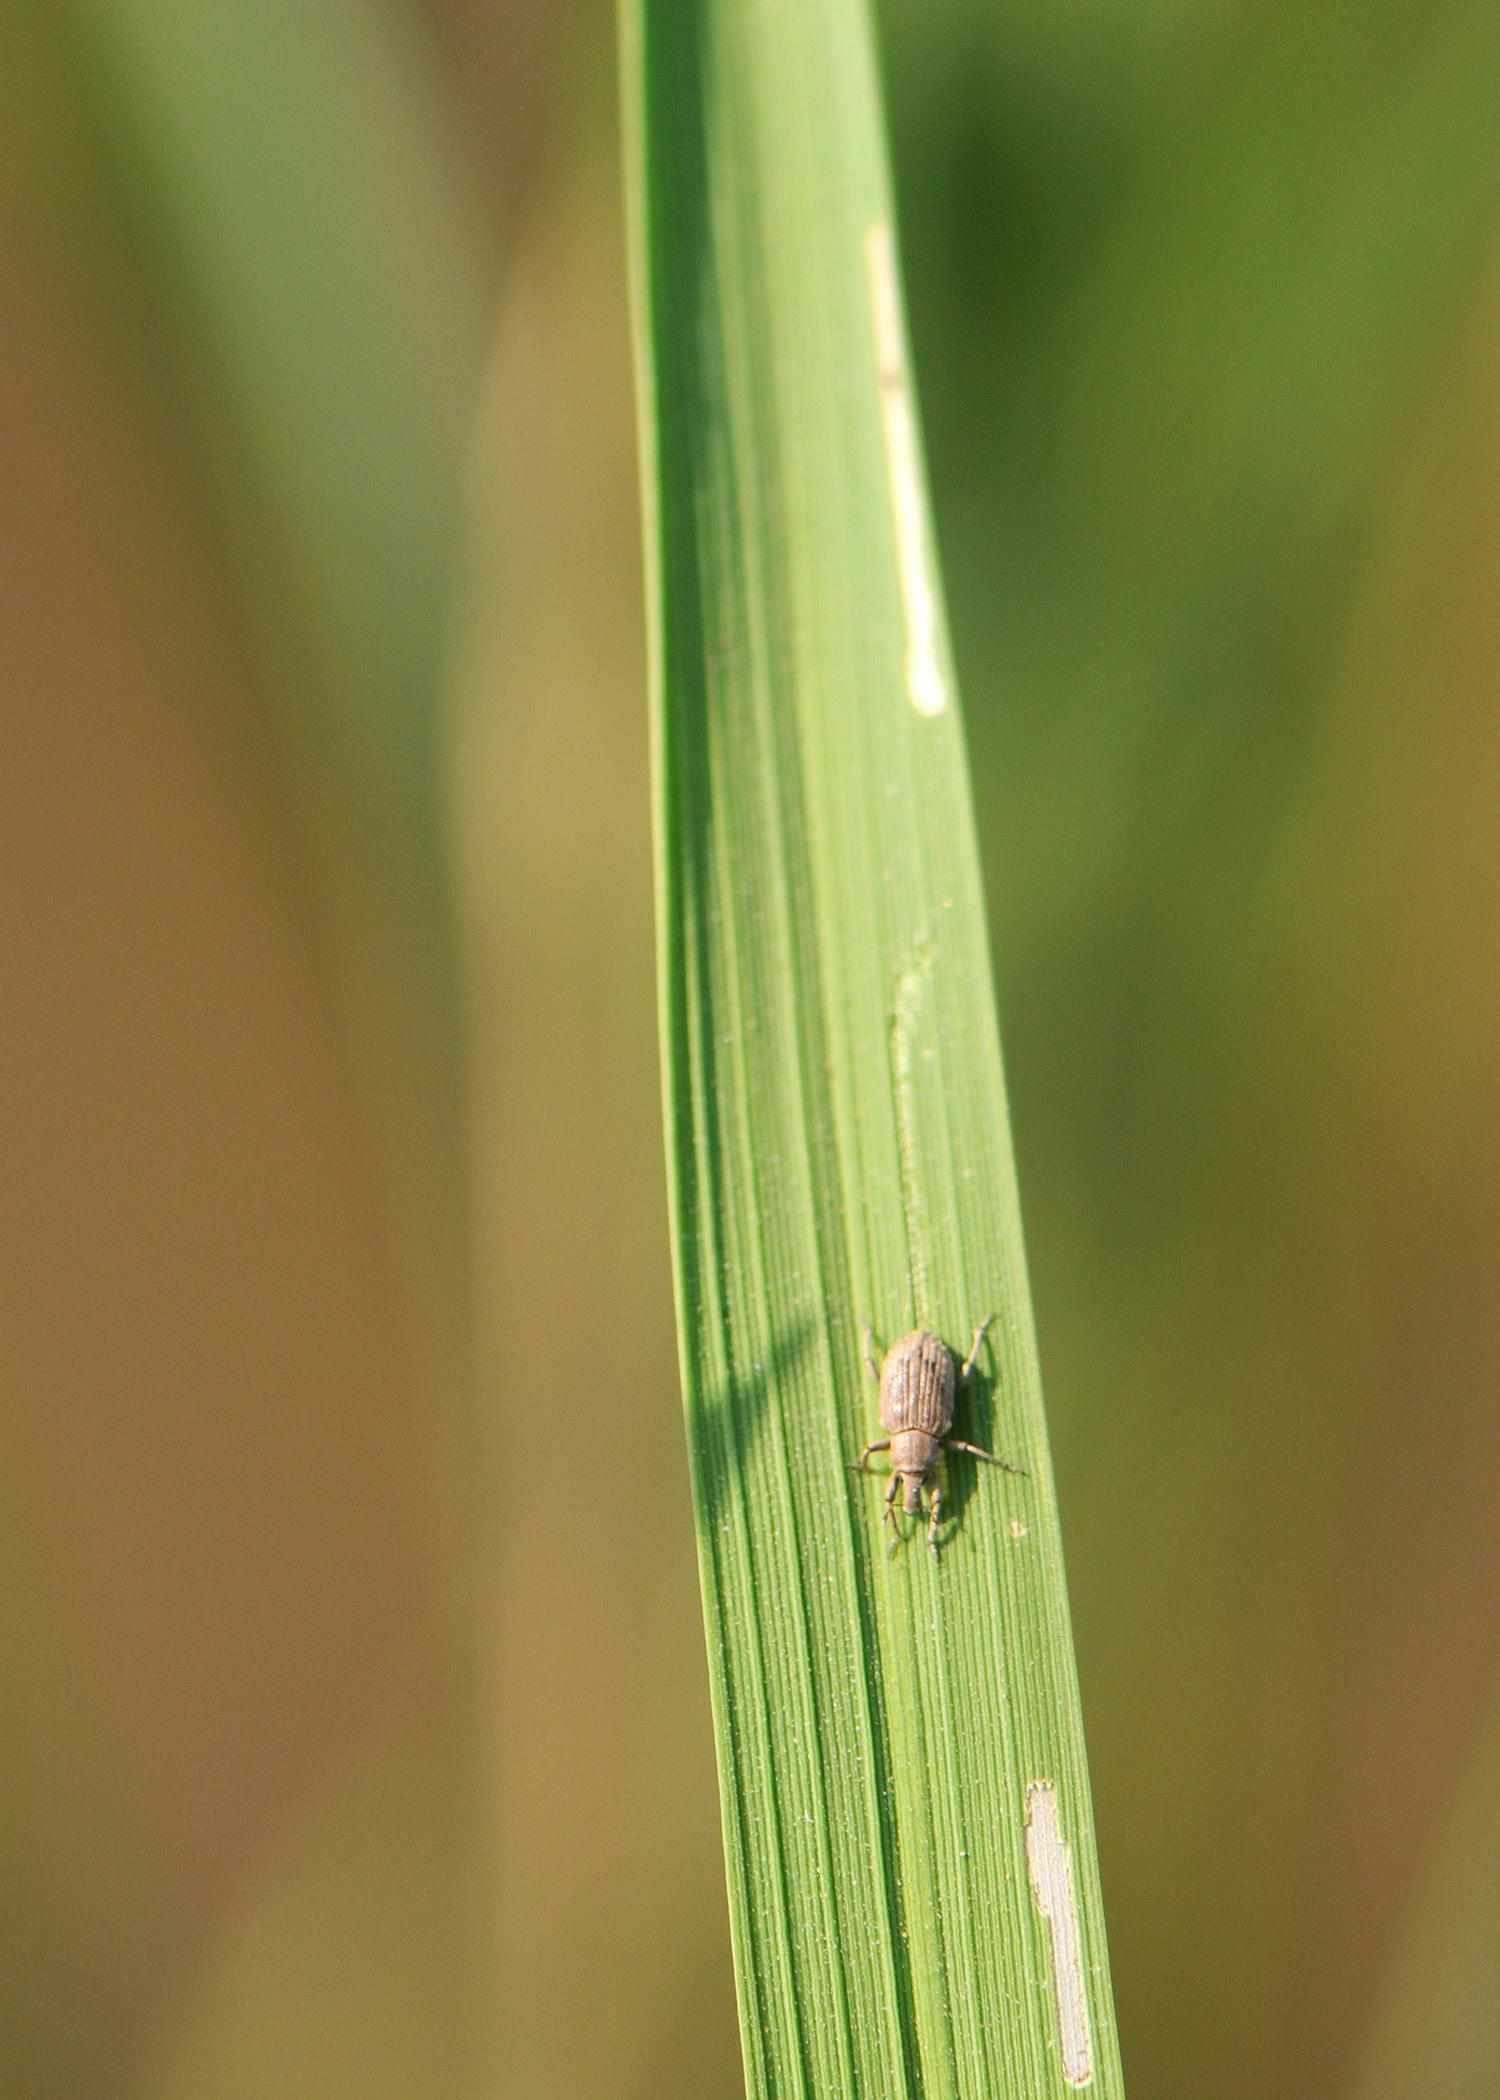 The rice water weevil, such as this adult on a rice leaf, is one of the most troublesome insect pests in rice, but seed treatments have proven to be effective in controlling them. The scars on the leaf are evidence of the rice water weevils' feeding. (Photo by Delta Research and Extension Center/Jeff Gore)